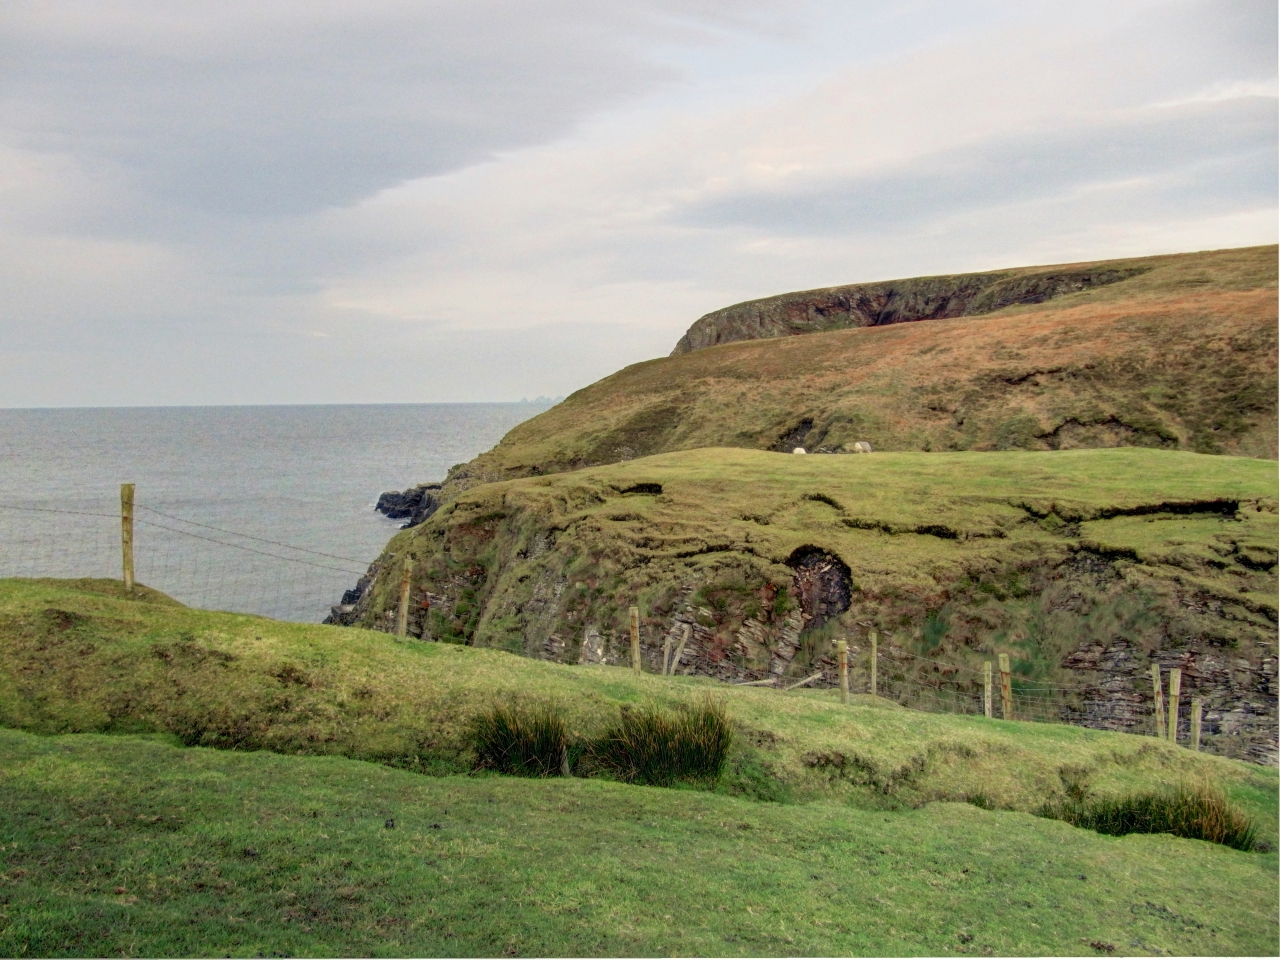 The cliffs off Glenlara.